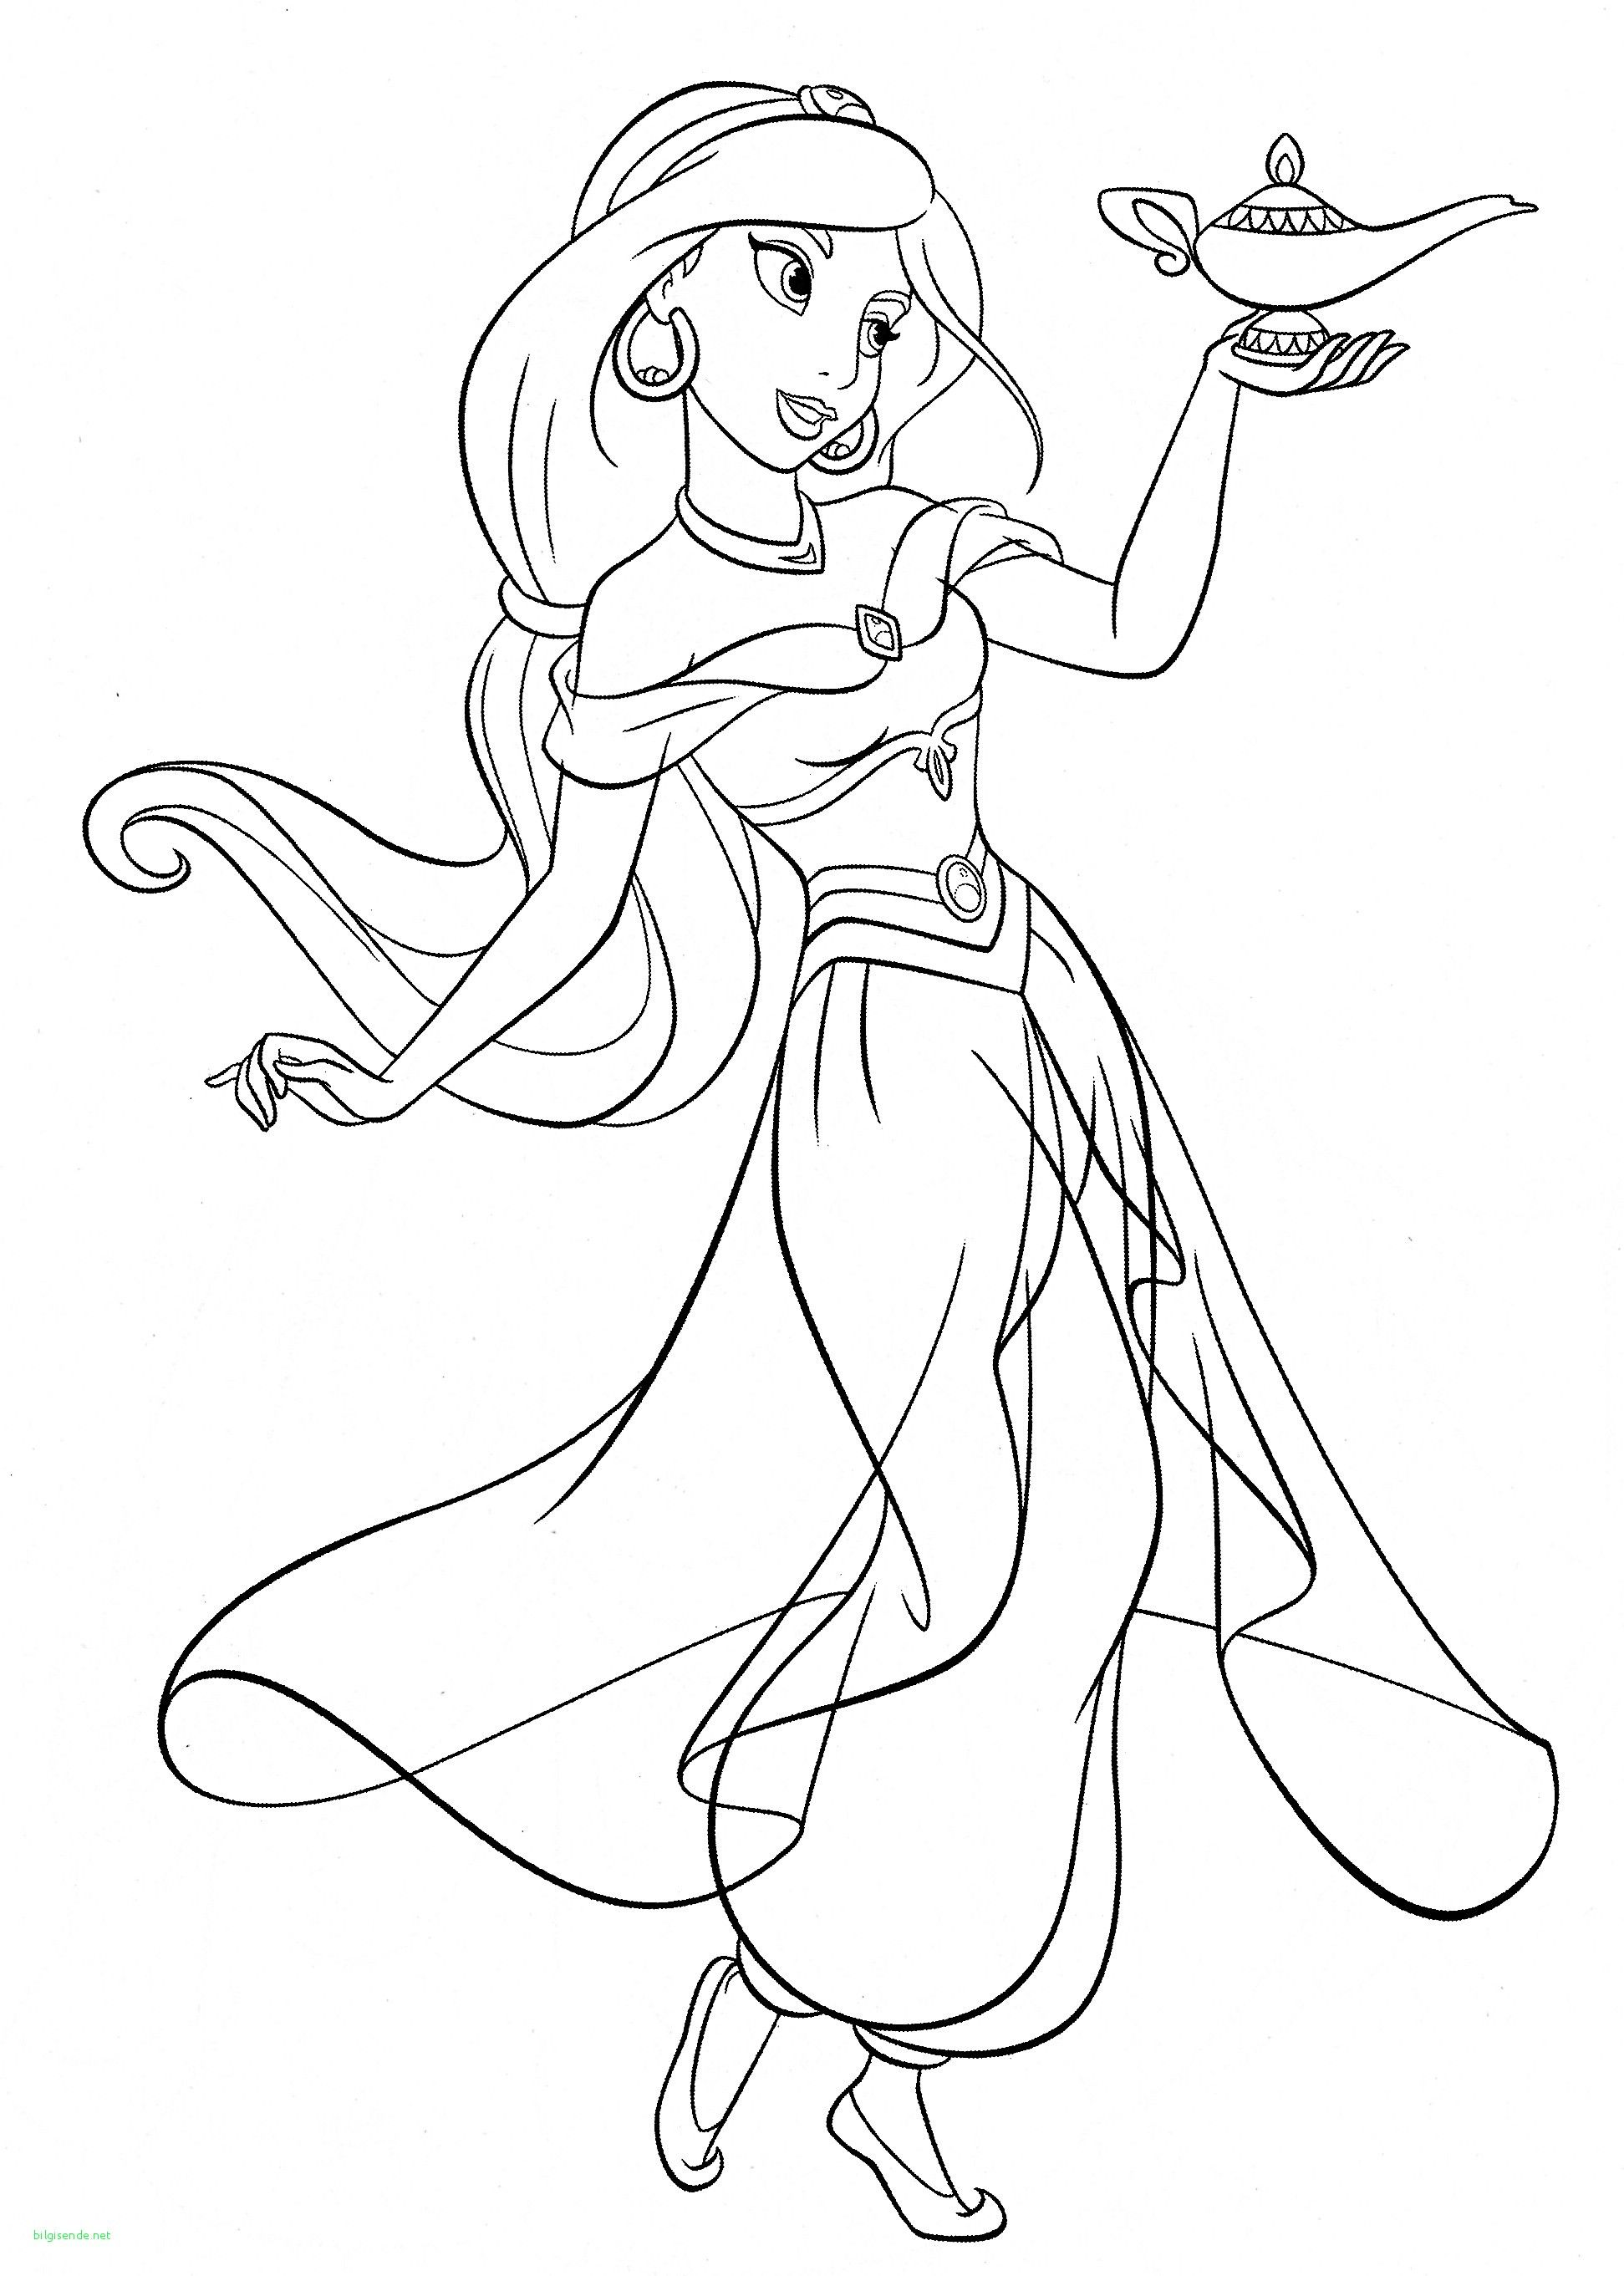 Disney Princess Coloring Pages Jasmine From The Thousand Photos On The Web With Regard Disney Princess Coloring Pages Princess Coloring Disney Coloring Pages